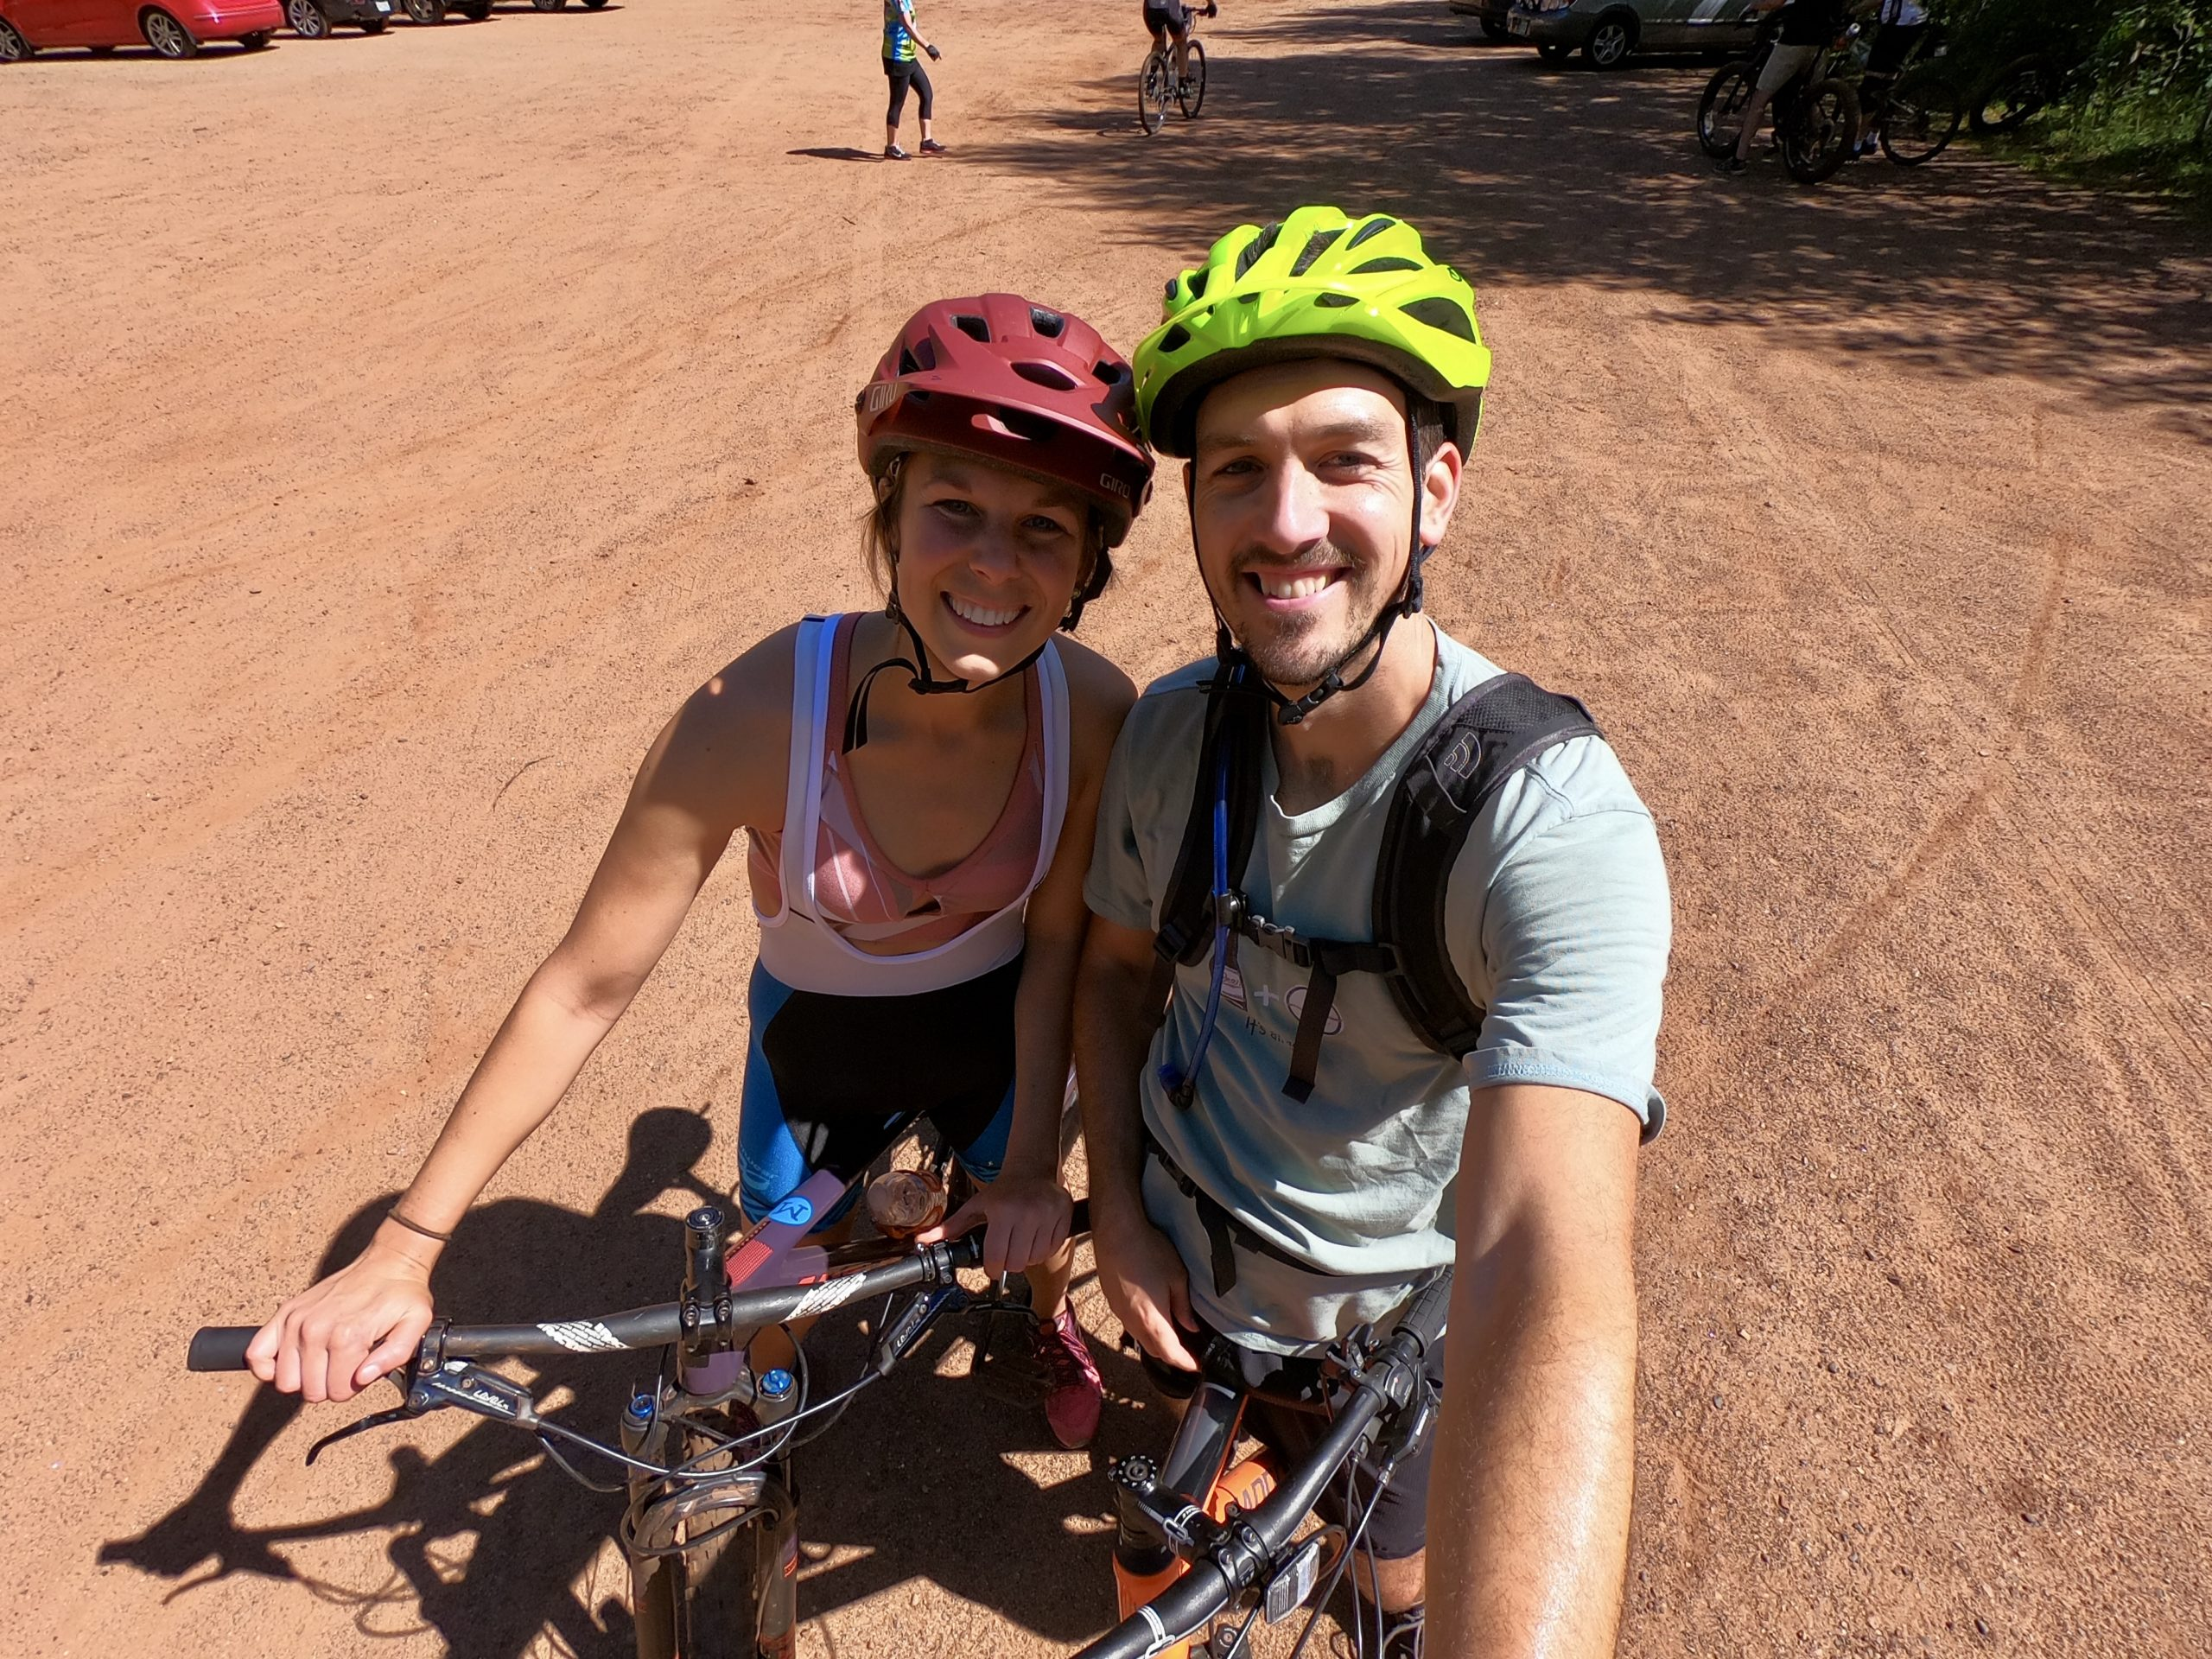 Three Life Lessons I Learned From Mountain Biking